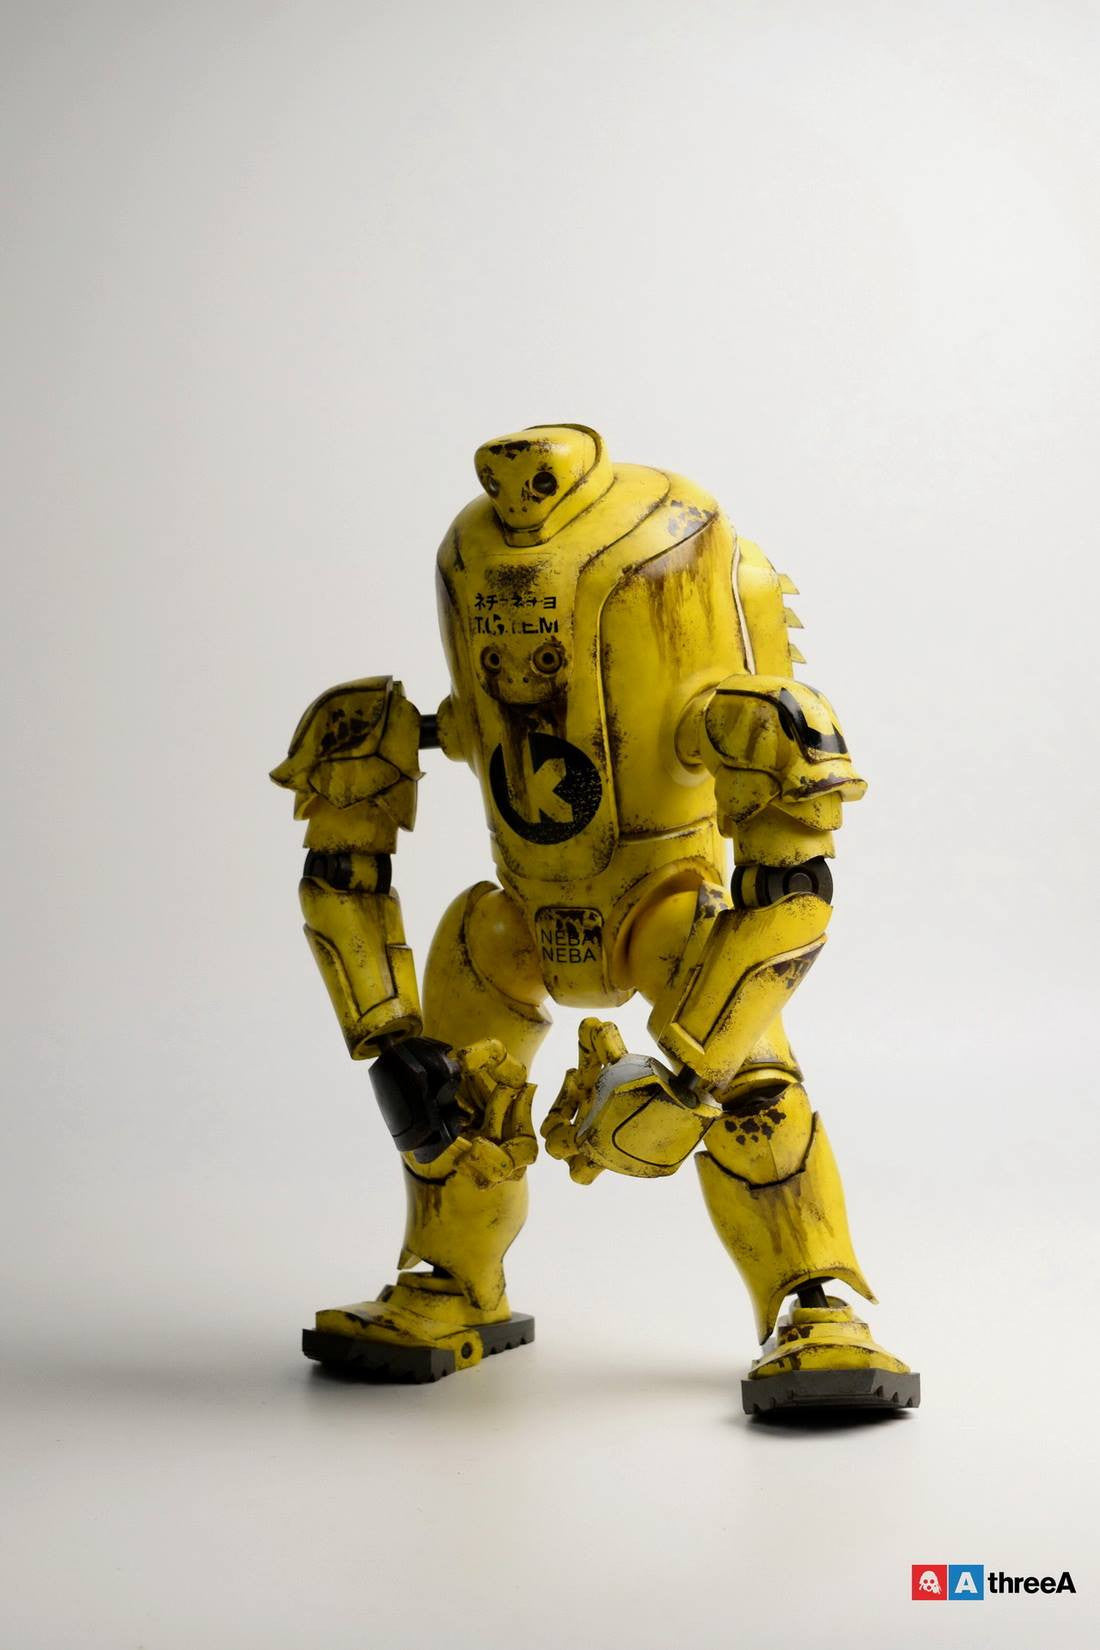 ThreeA - Evenfall - 1/6 T.O.T.E.M Thug Pugillo - K Striker-047 (Yellow) - Marvelous Toys - 1